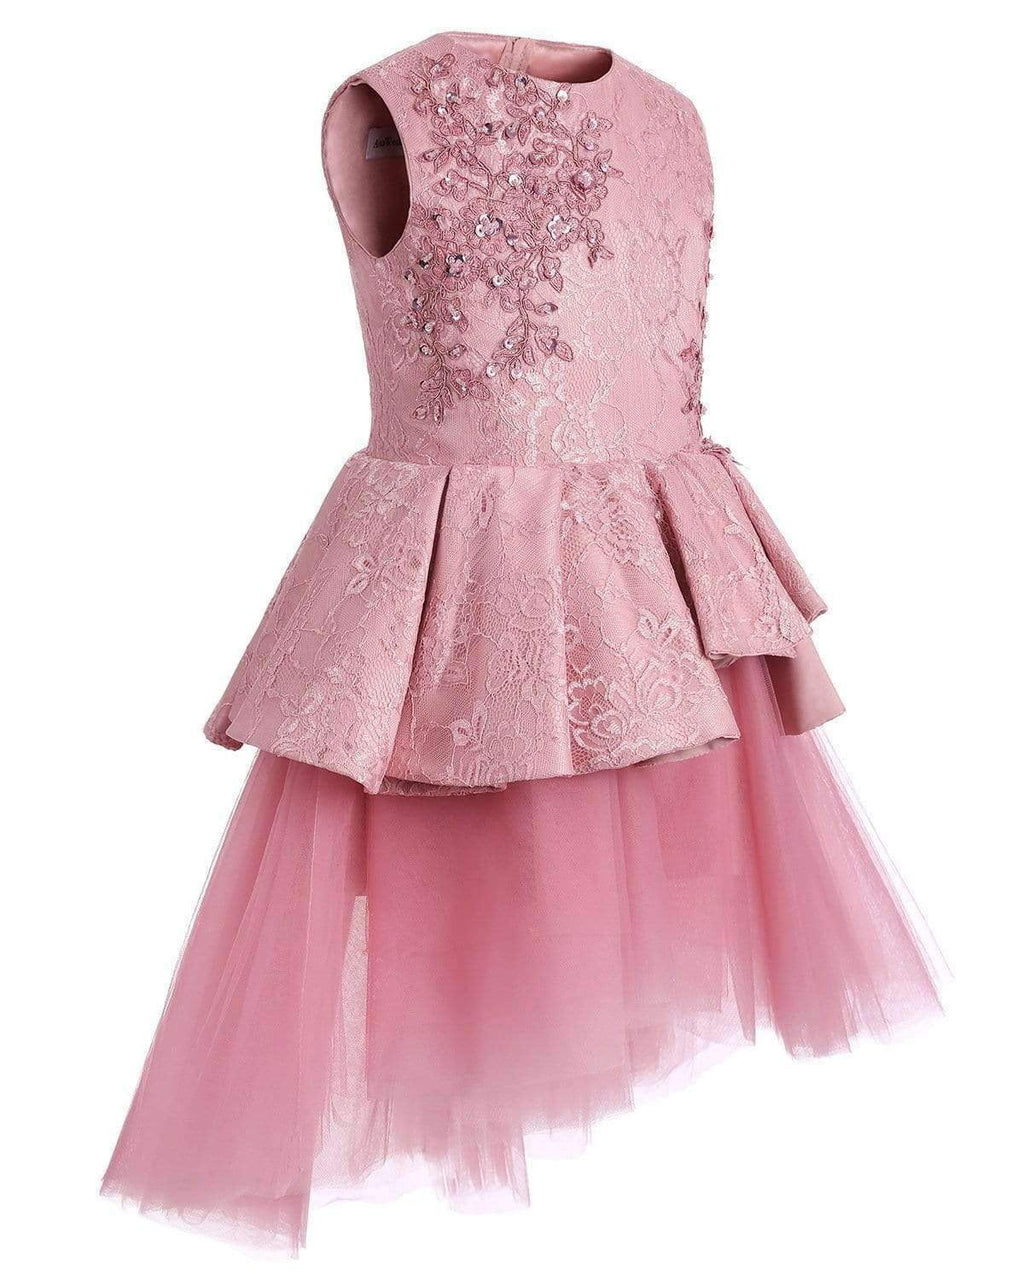 Pink Lace Tulle High Low Ruffles Cute Flower Girl Dresses , FGS051